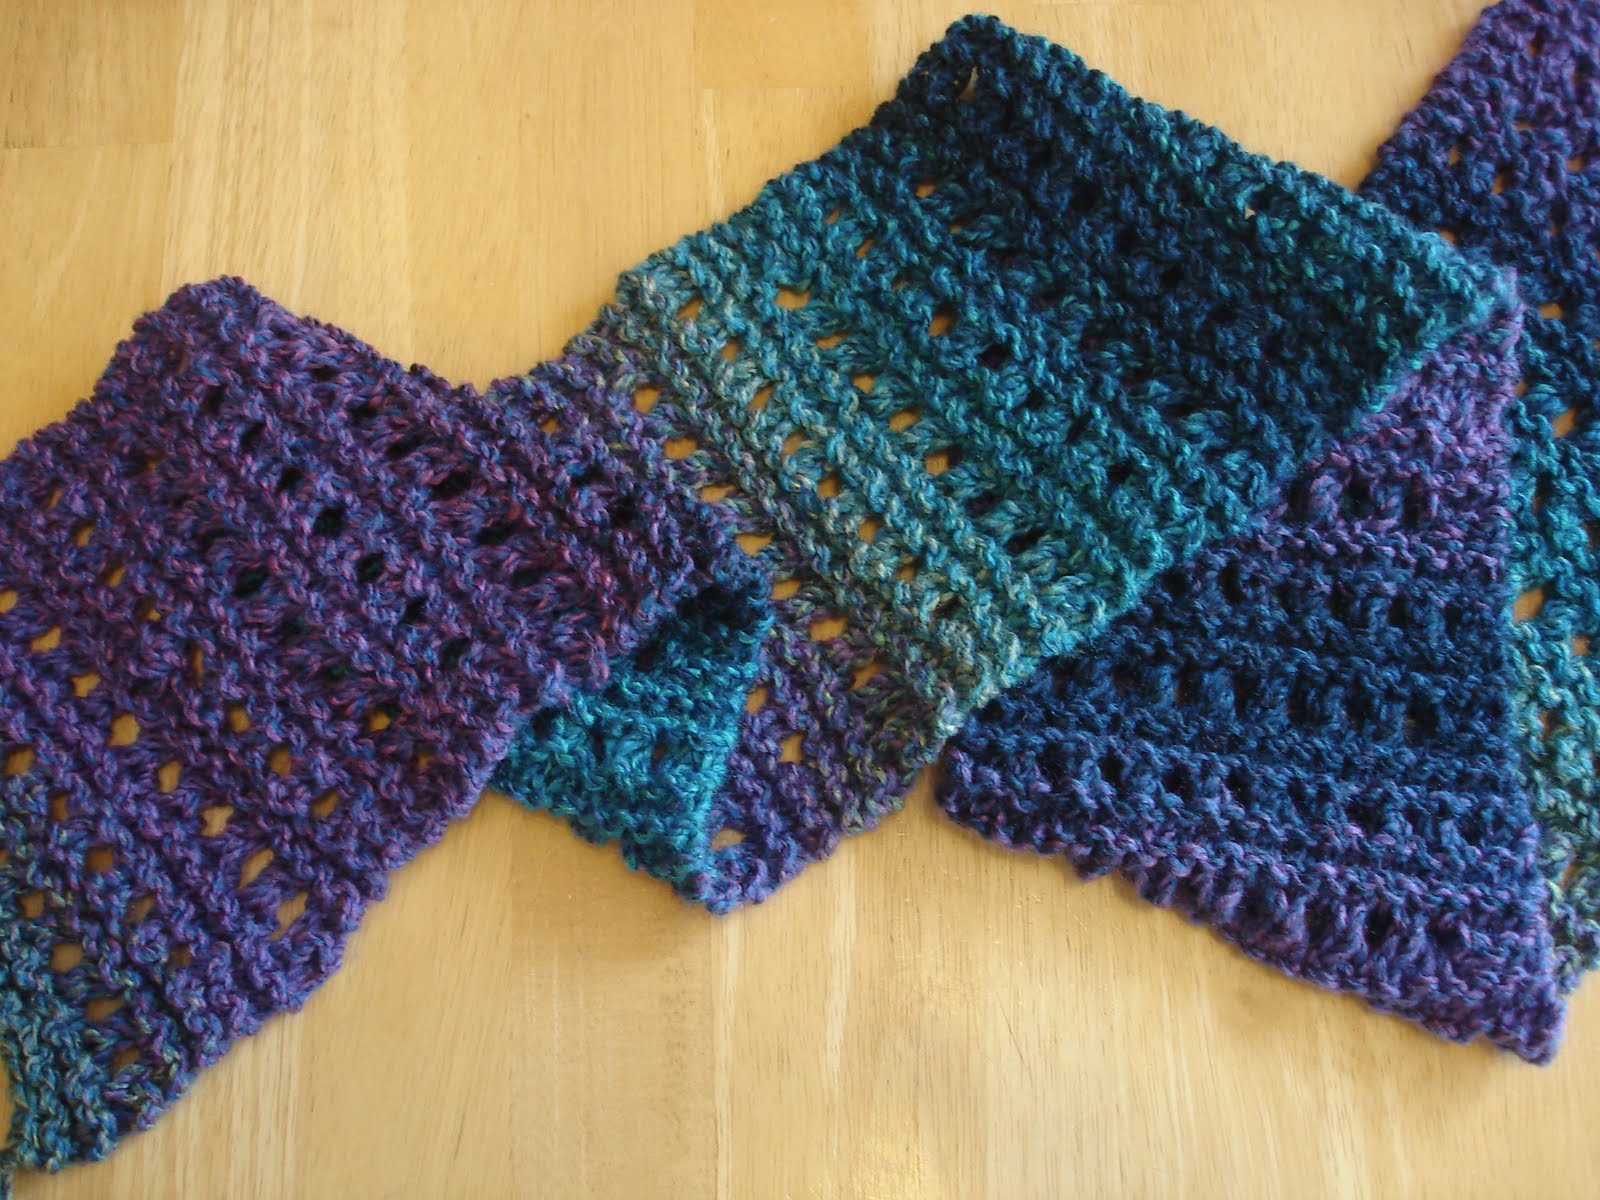 Free Knitting Patterns For Scarves For Beginners : Fiber Flux: Free Knitting Patterns